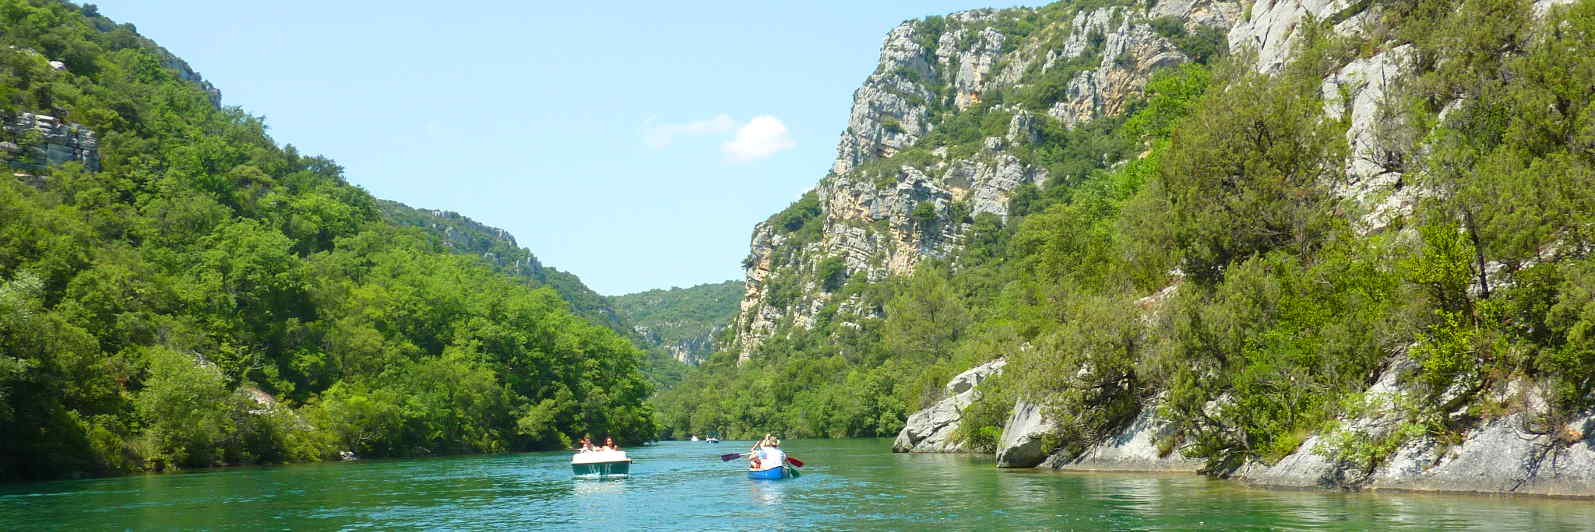 Les gorges du verdon la verdi re for Camping verdon piscine